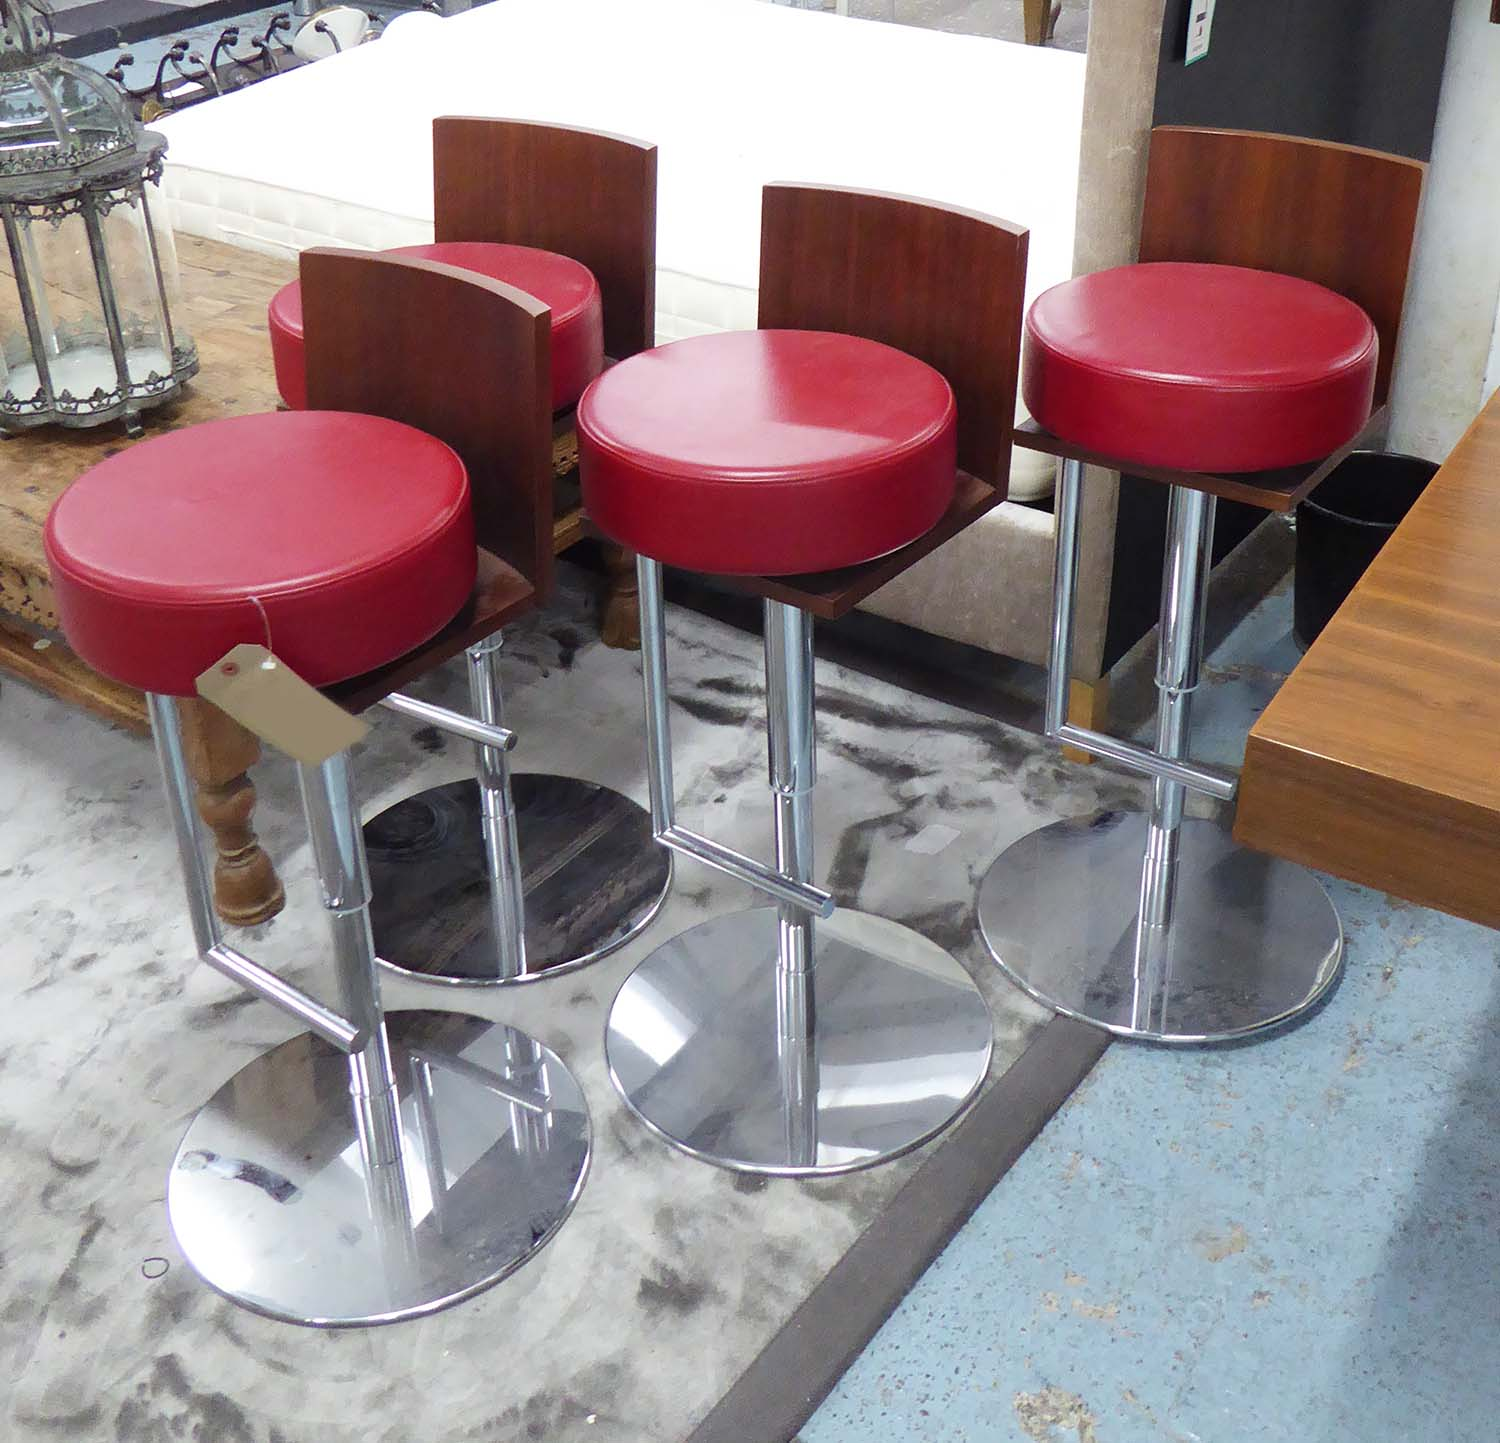 Poltrona Frau Le Spighe Bar Stools A Set Of Four By